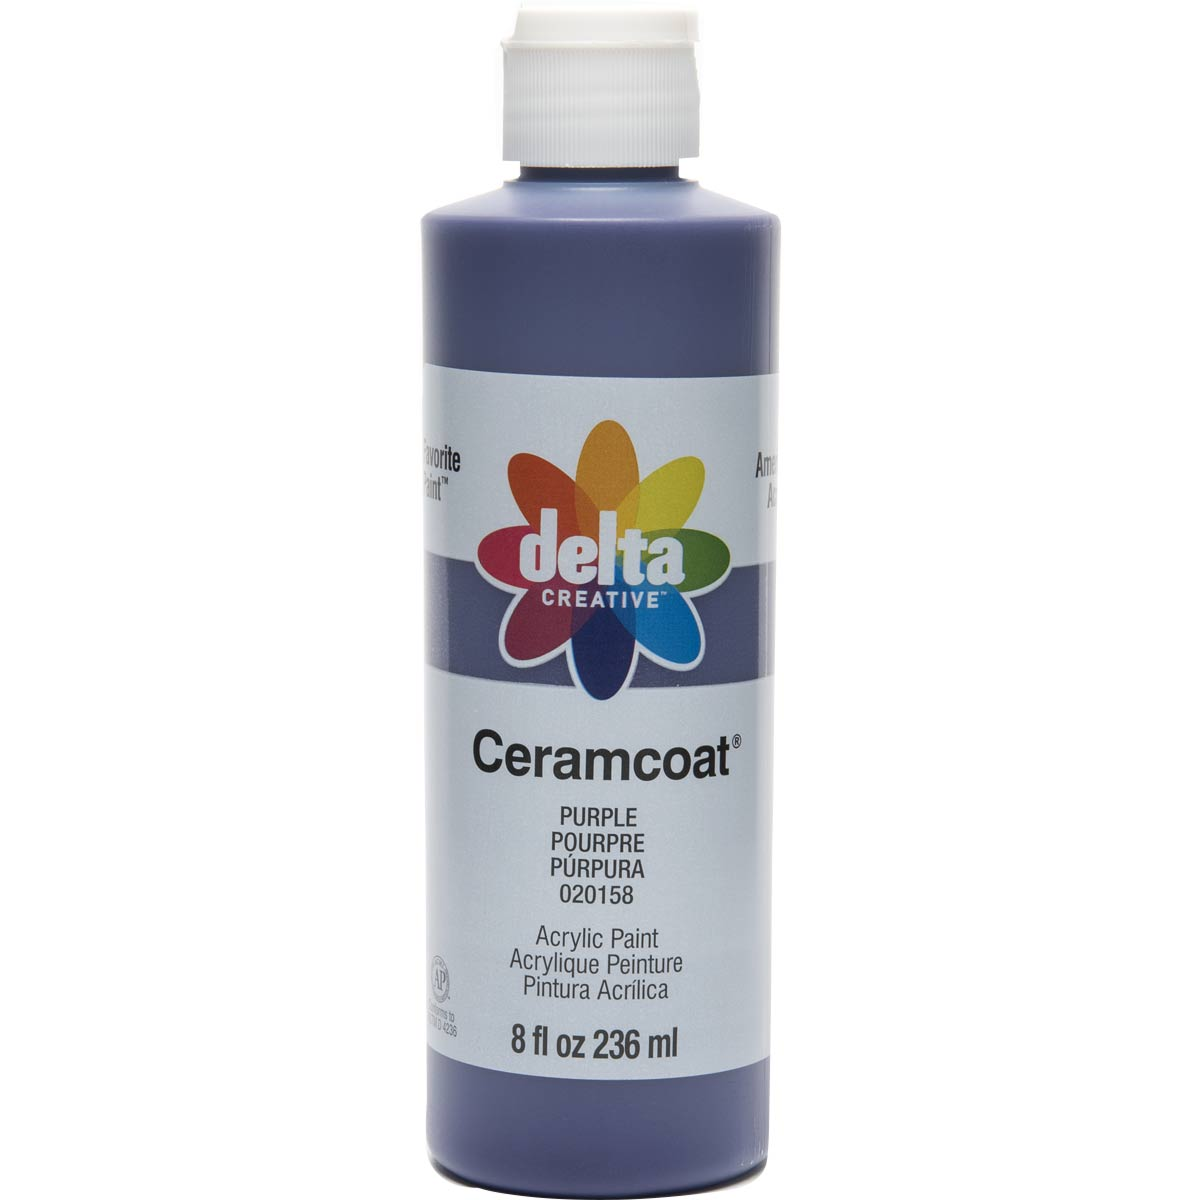 Delta Ceramcoat ® Acrylic Paint - Purple, 8 oz. - 020158